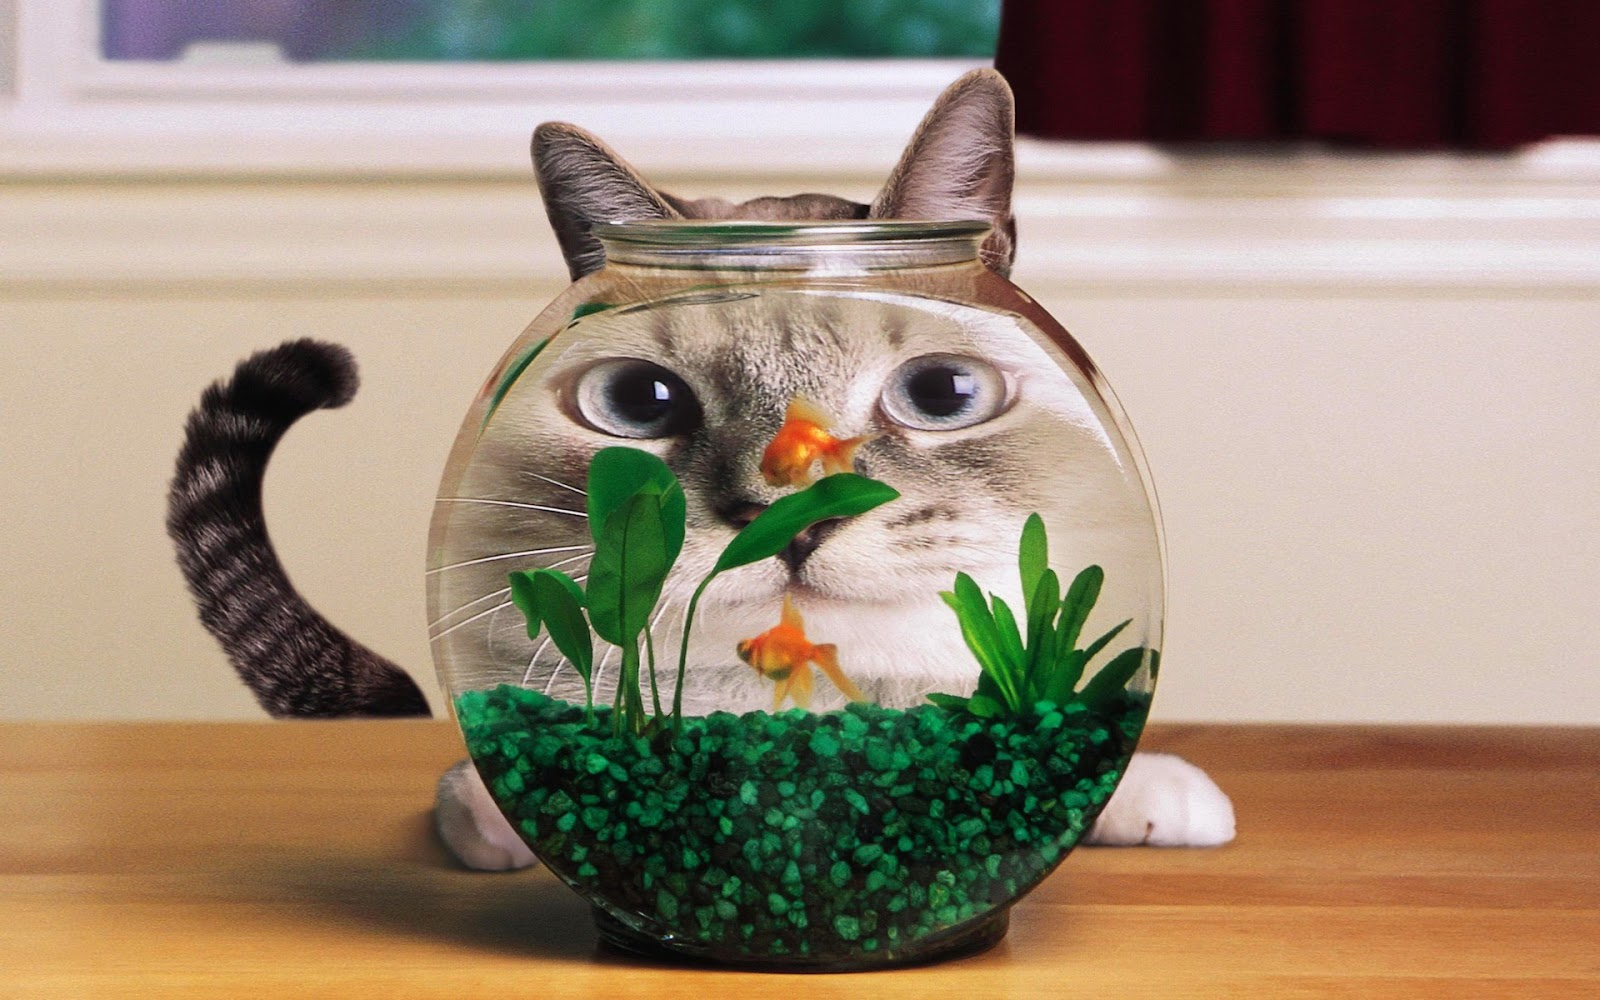 Funny cat images for laugh humorous hd wallpaper for Fish videos for cats